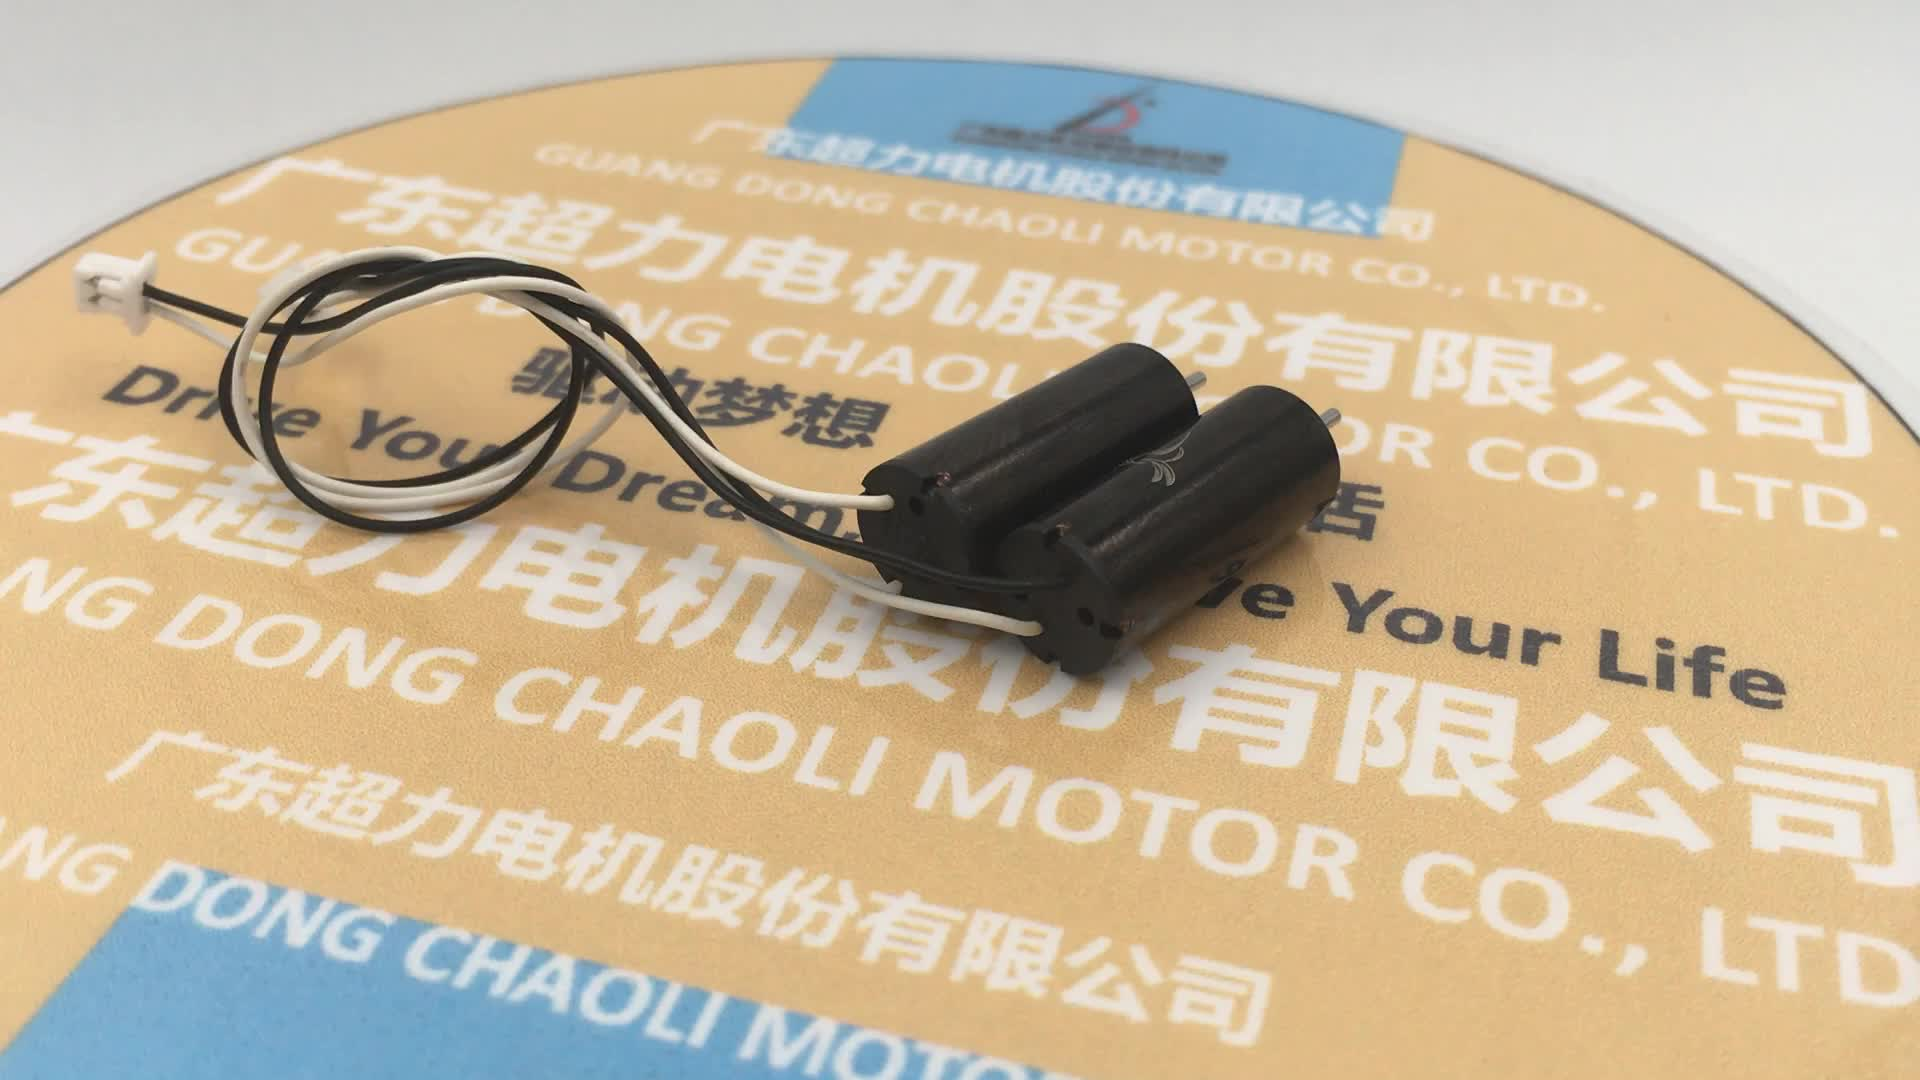 chaoli new 6~18KV 3.7V mini drone and quadcopter CL-8520 and CL-0820 coreless motor with high torque and speed-chaoli2016